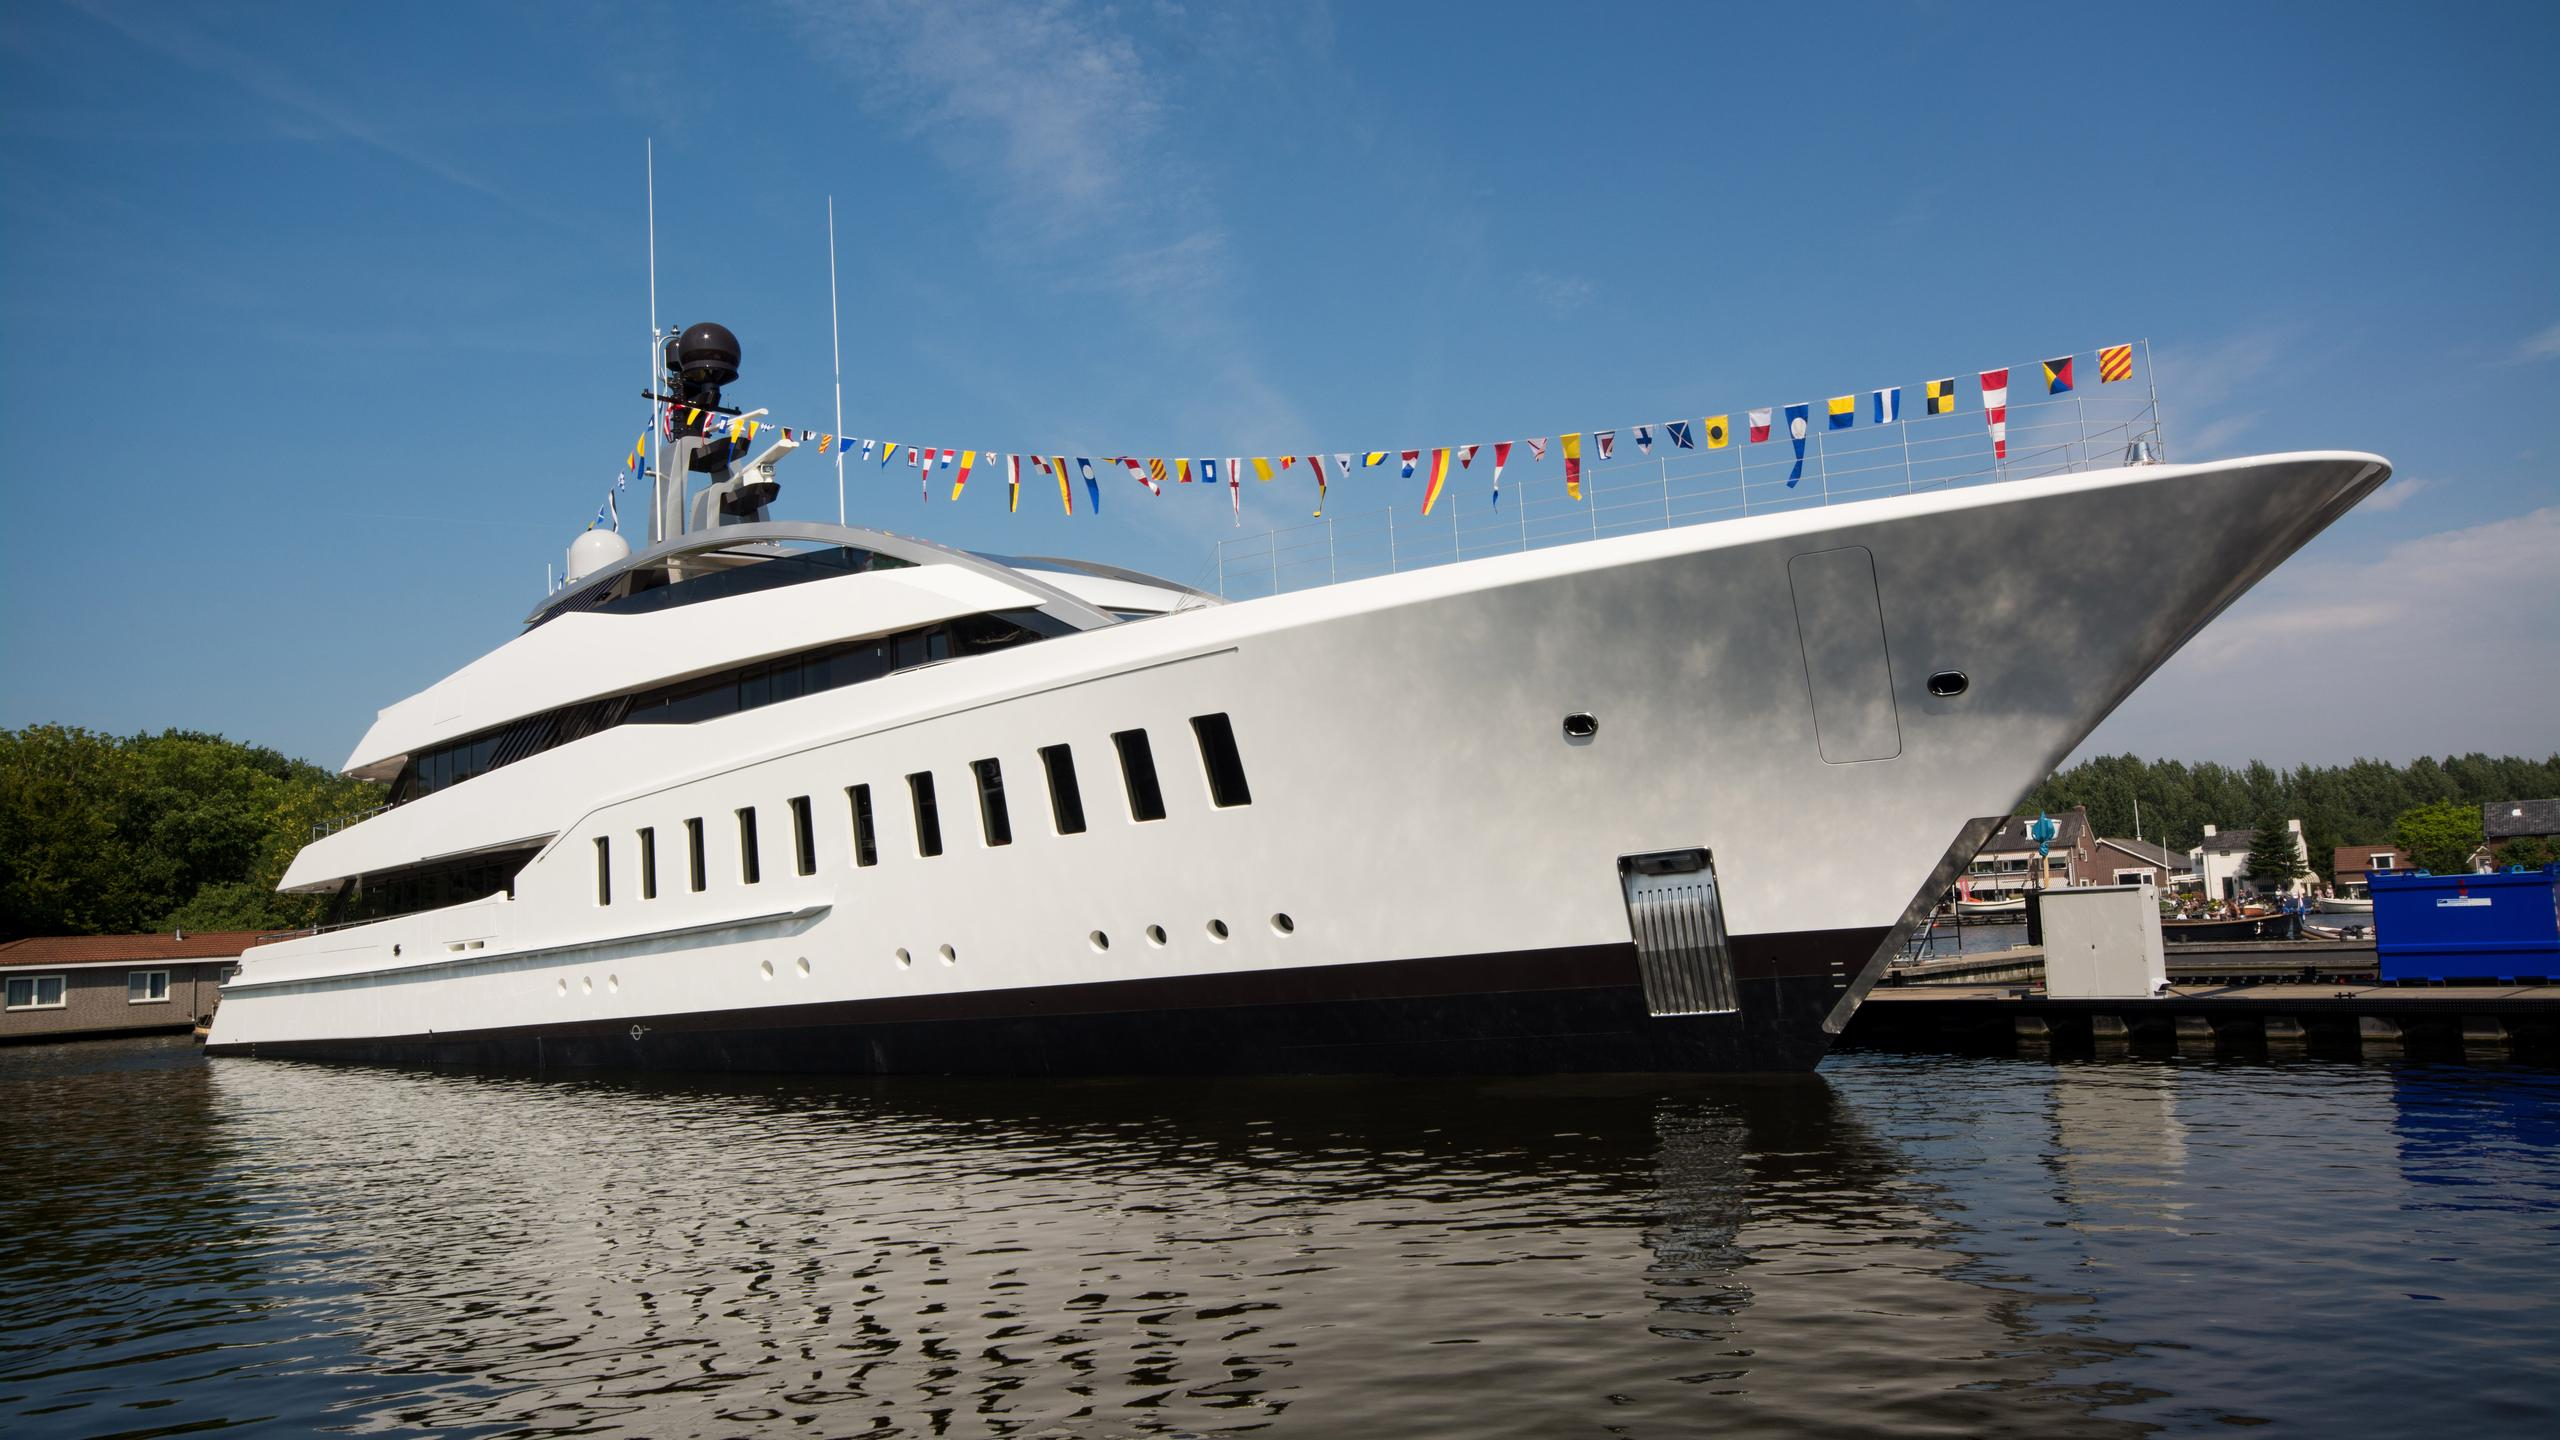 halo-yacht-exterior-launch